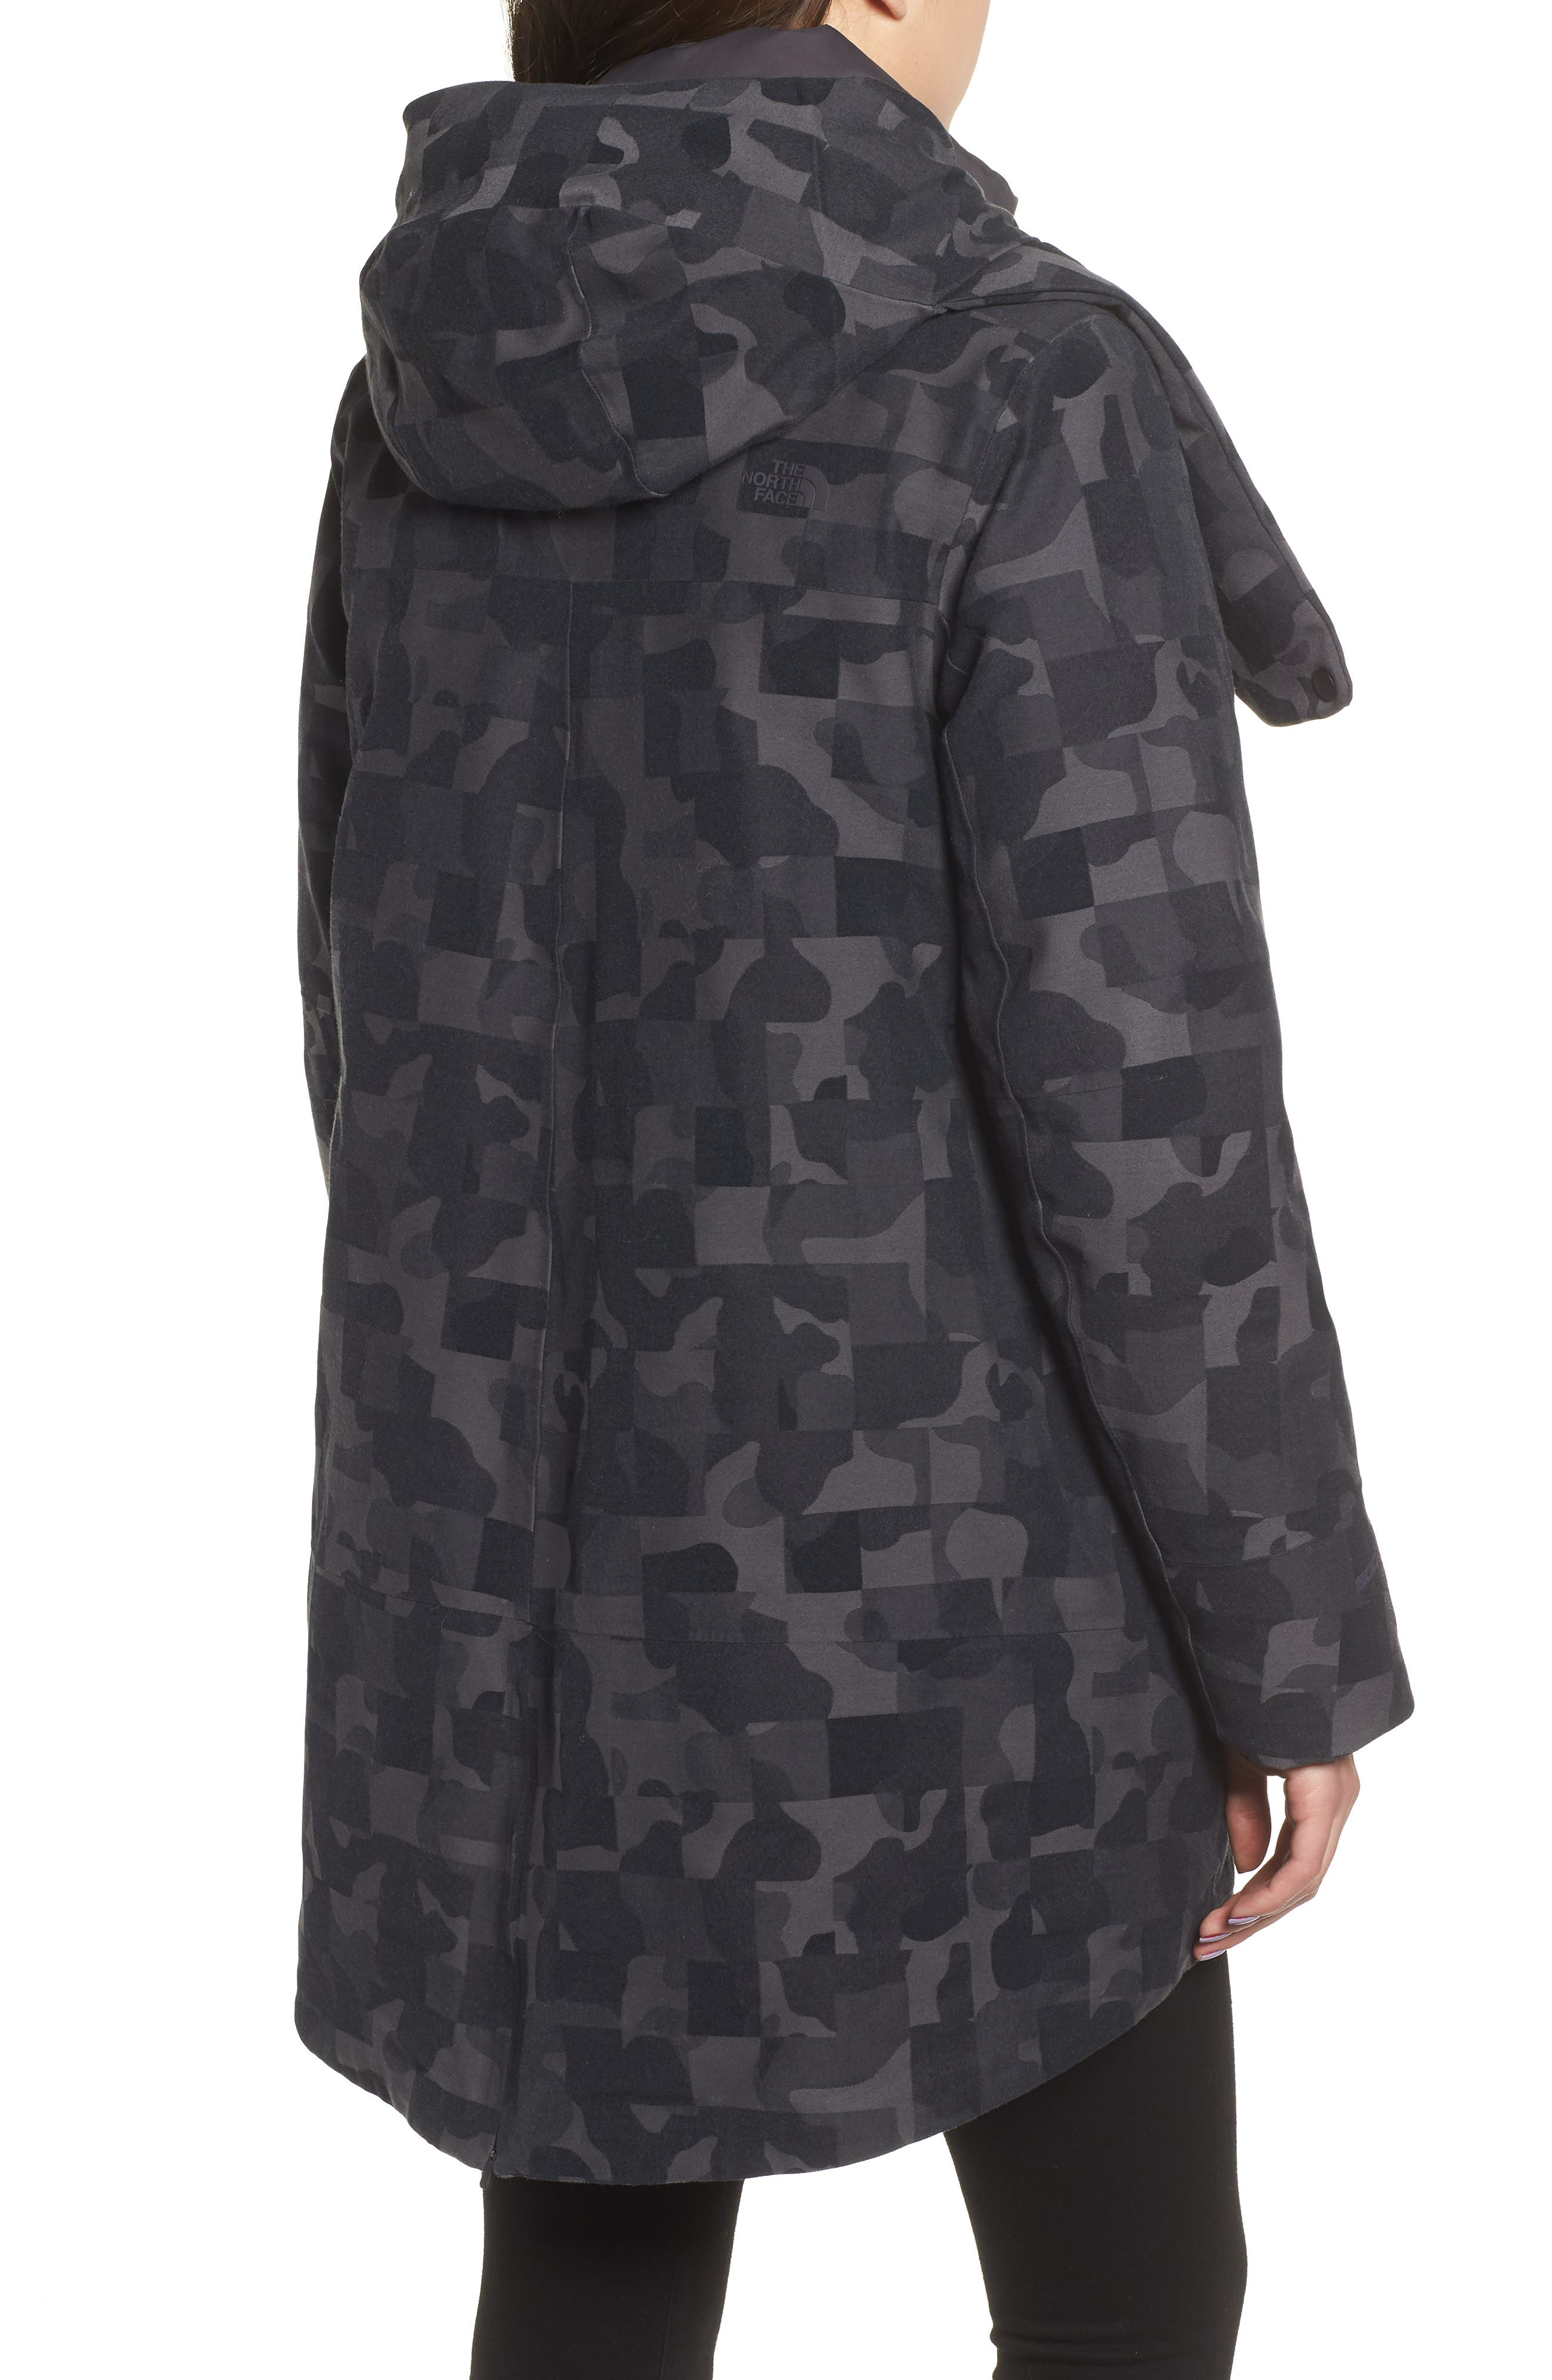 Cryos Expedition 800 Fill Power Down Gore-Tex<sup>®</sup> Parka,                             Alternate thumbnail 2, color,                             001